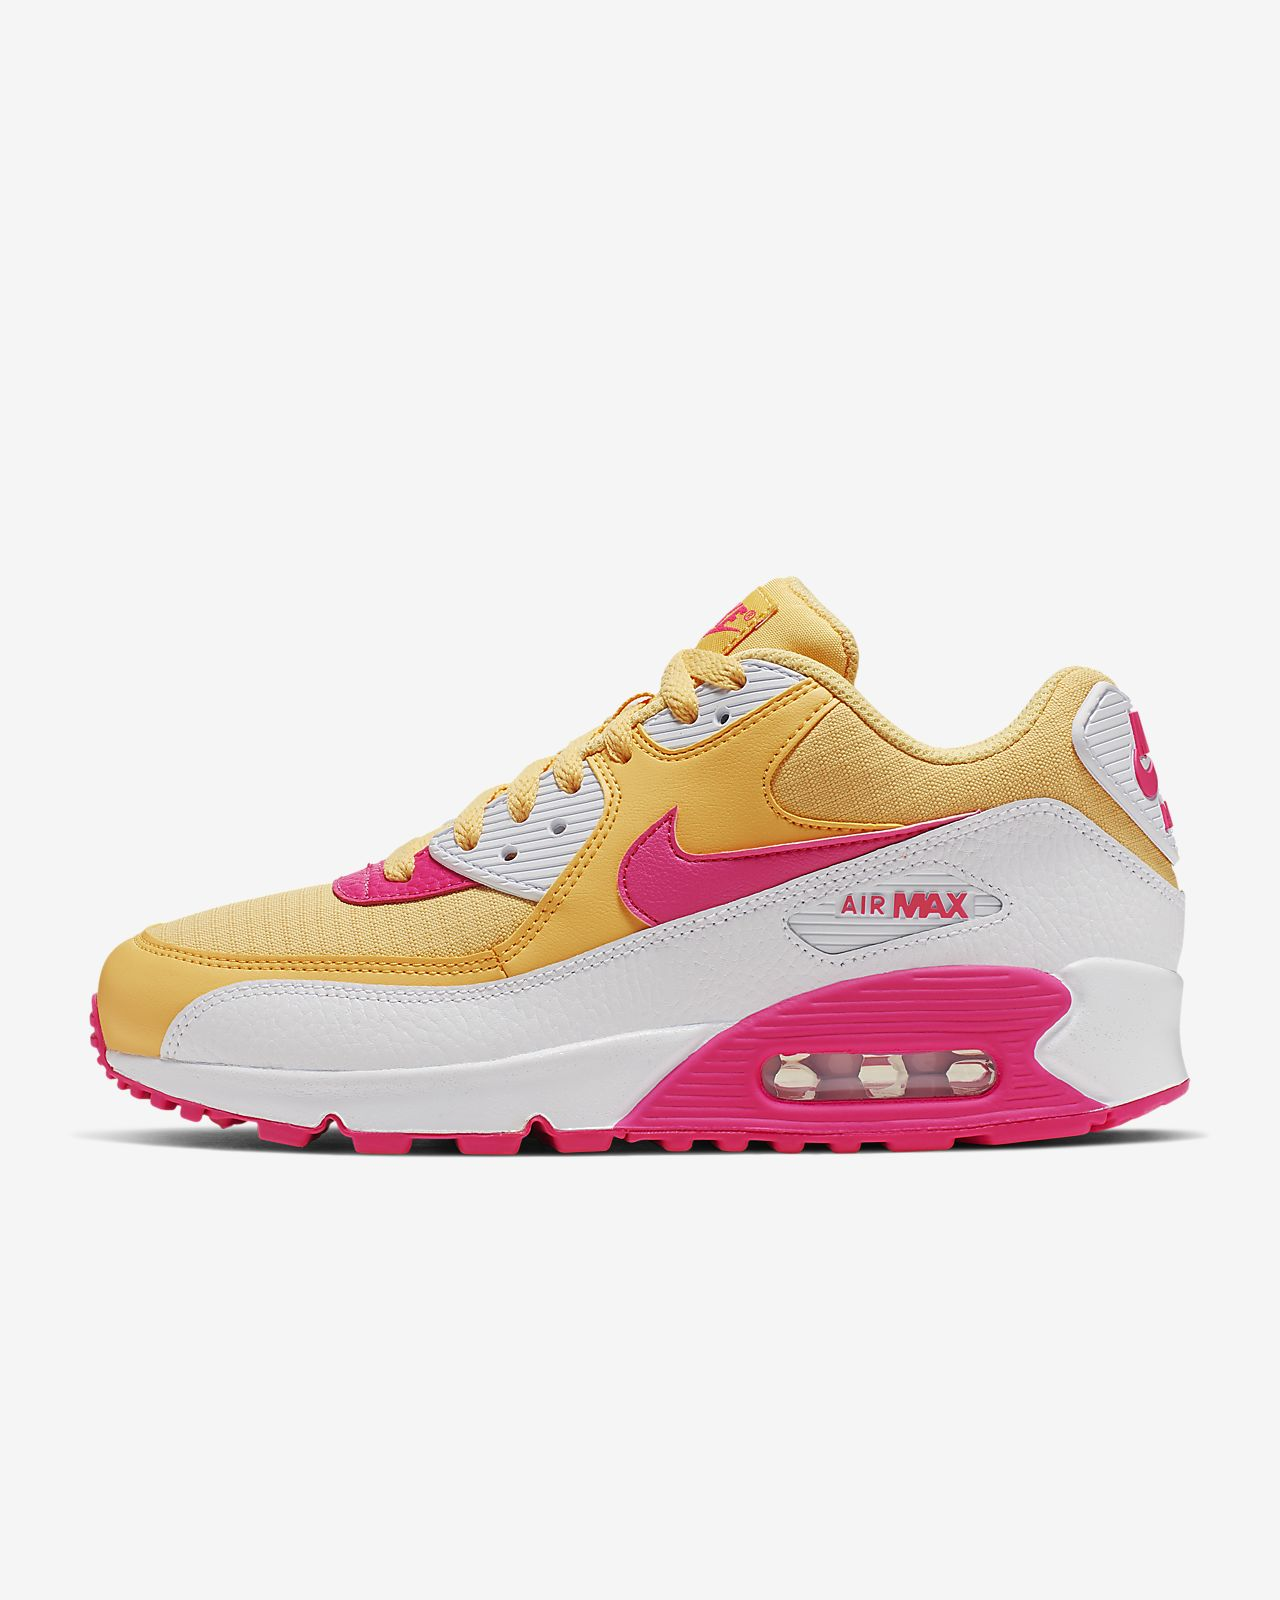 super popular c77b1 eca62 Women s Shoe. Nike Air Max 90